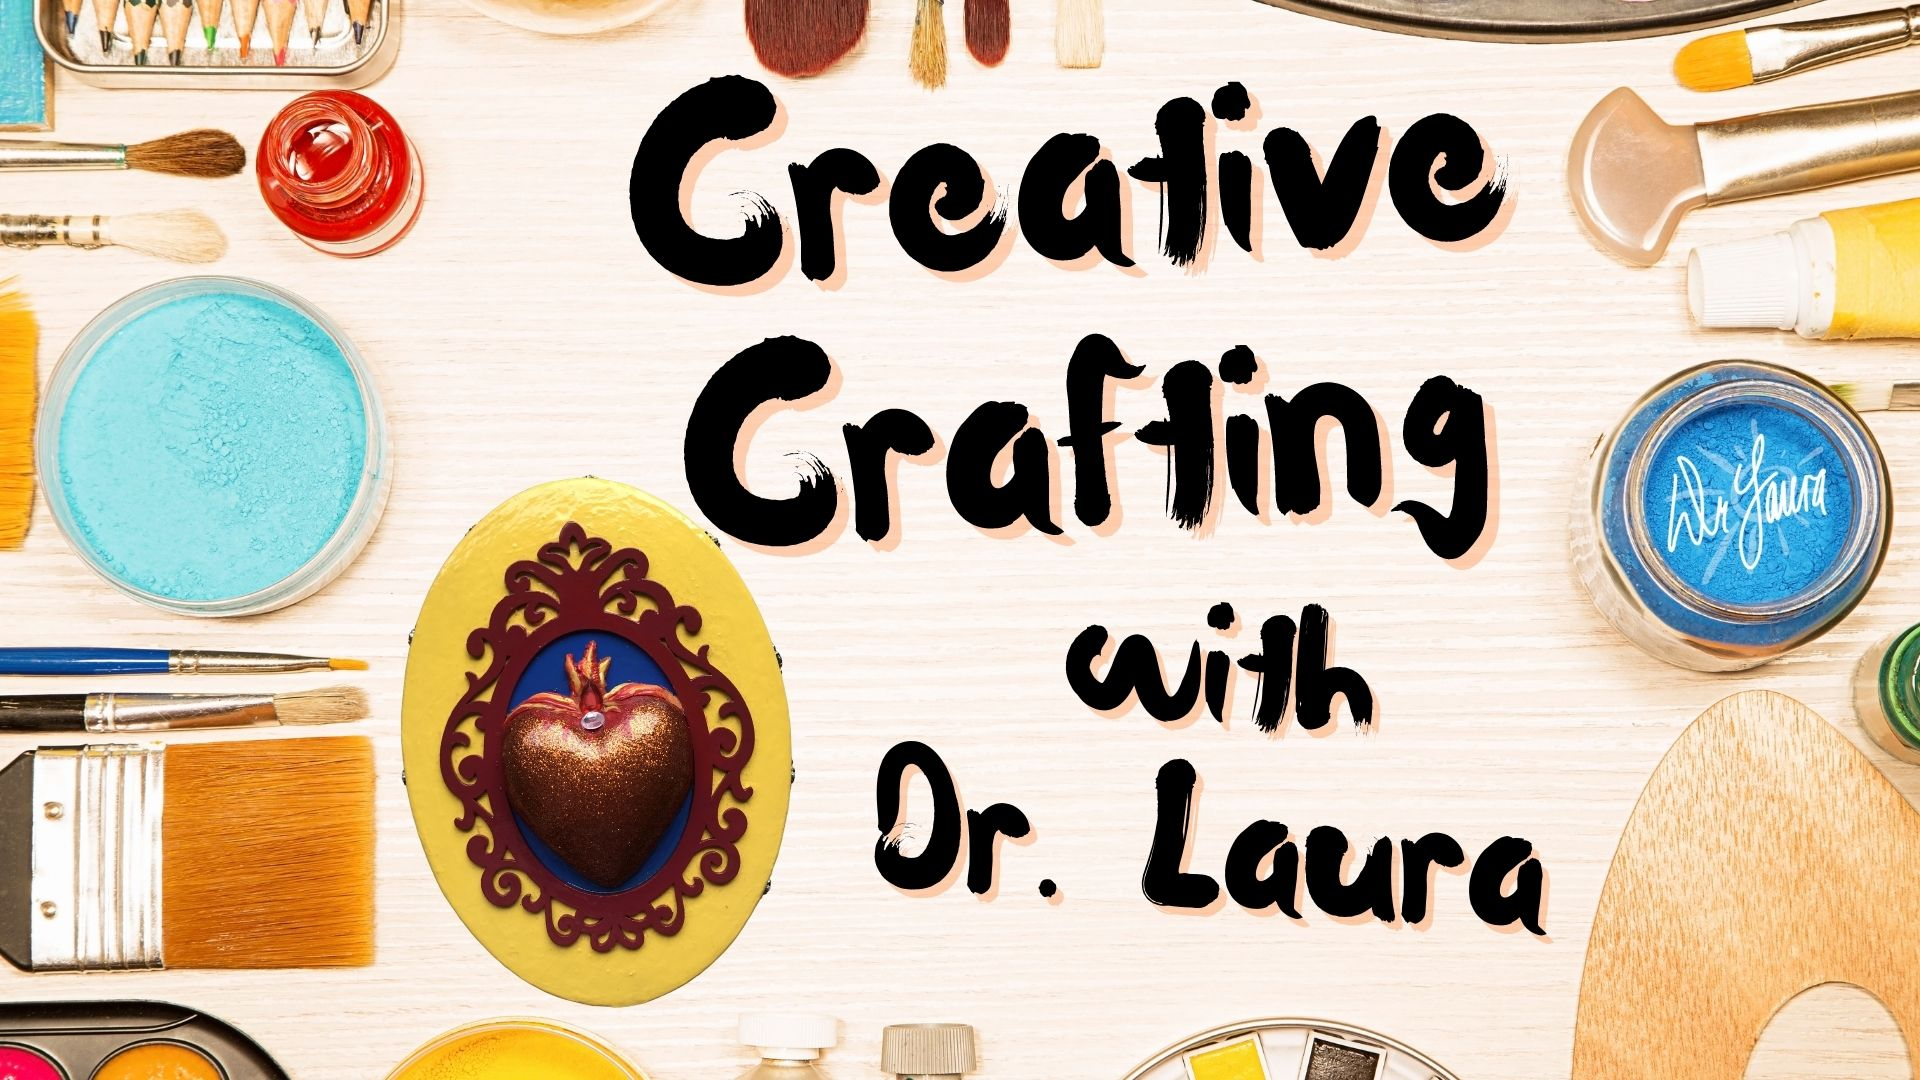 YouTube: Creative Crafting with Dr. Laura